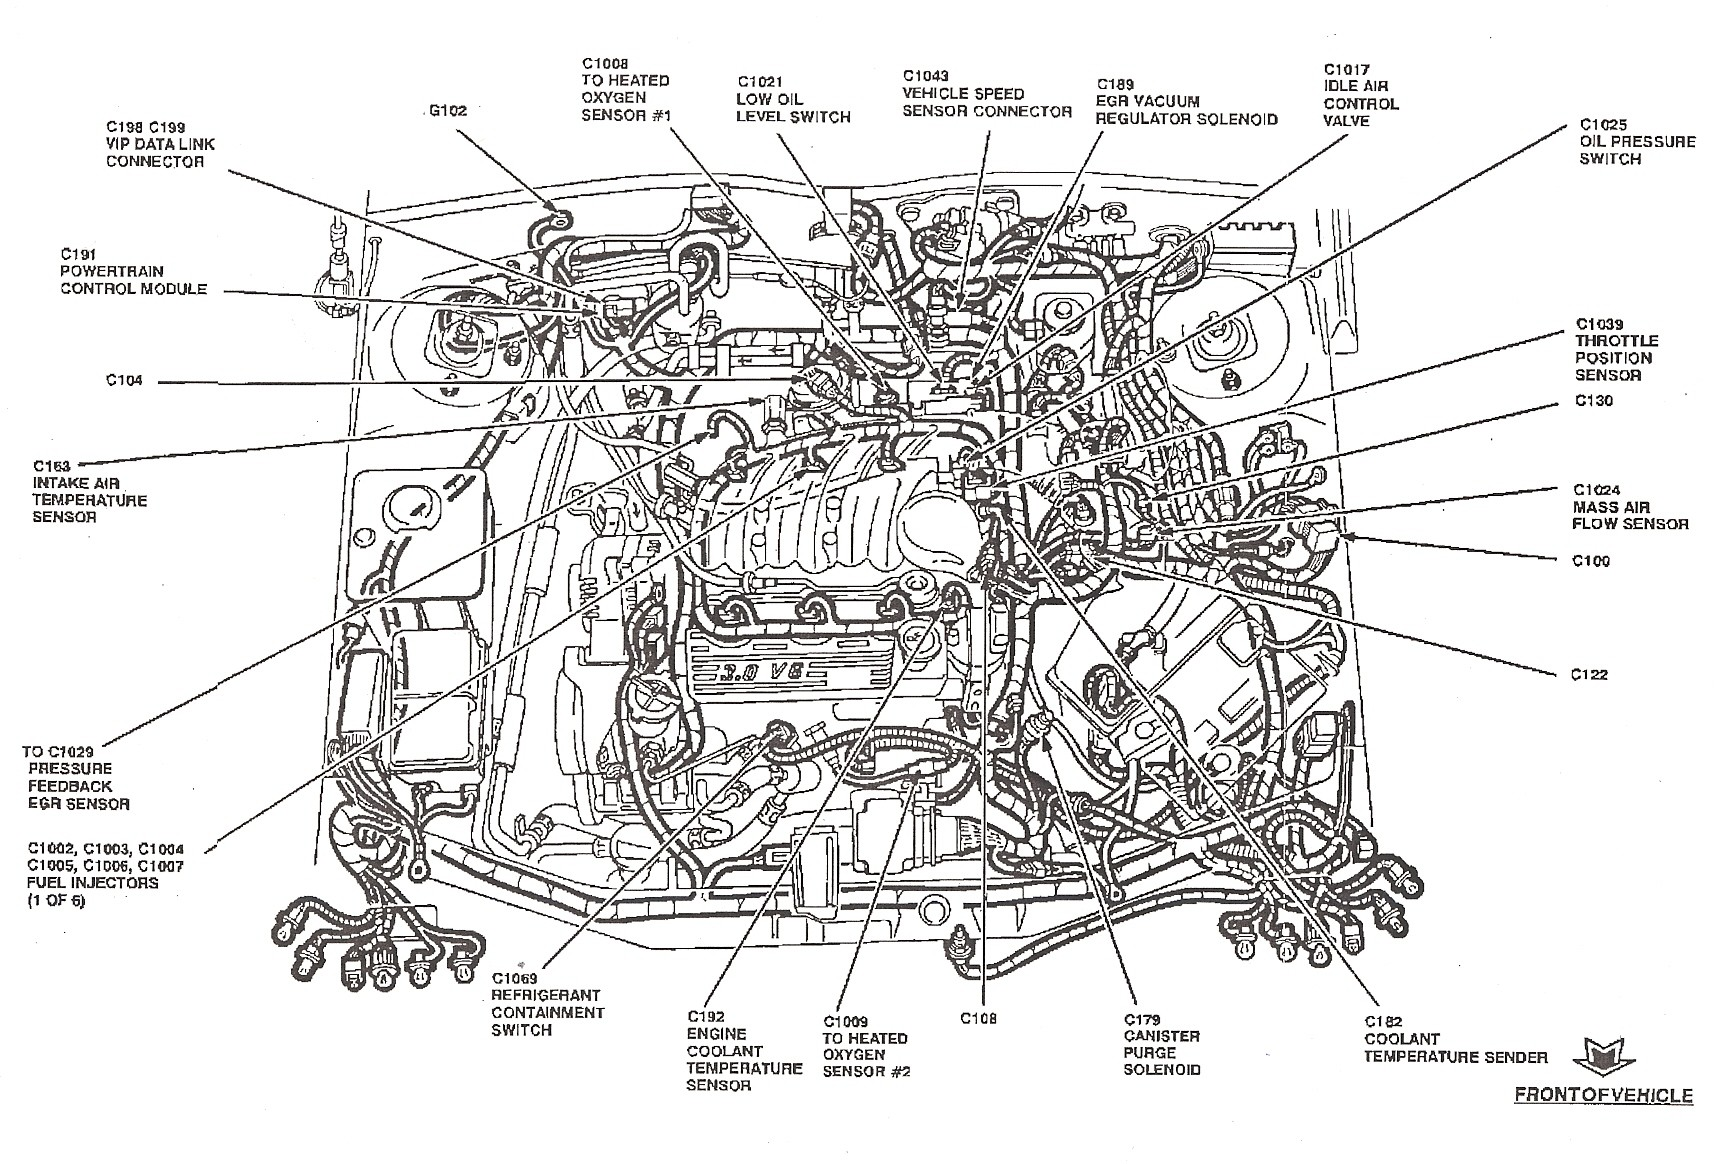 Www 1997 Ford Taurus Engine Diagram Modern Design Of Wiring 97 Schematics Rh 7 1 Schlaglicht Regional De Vacuum Belt